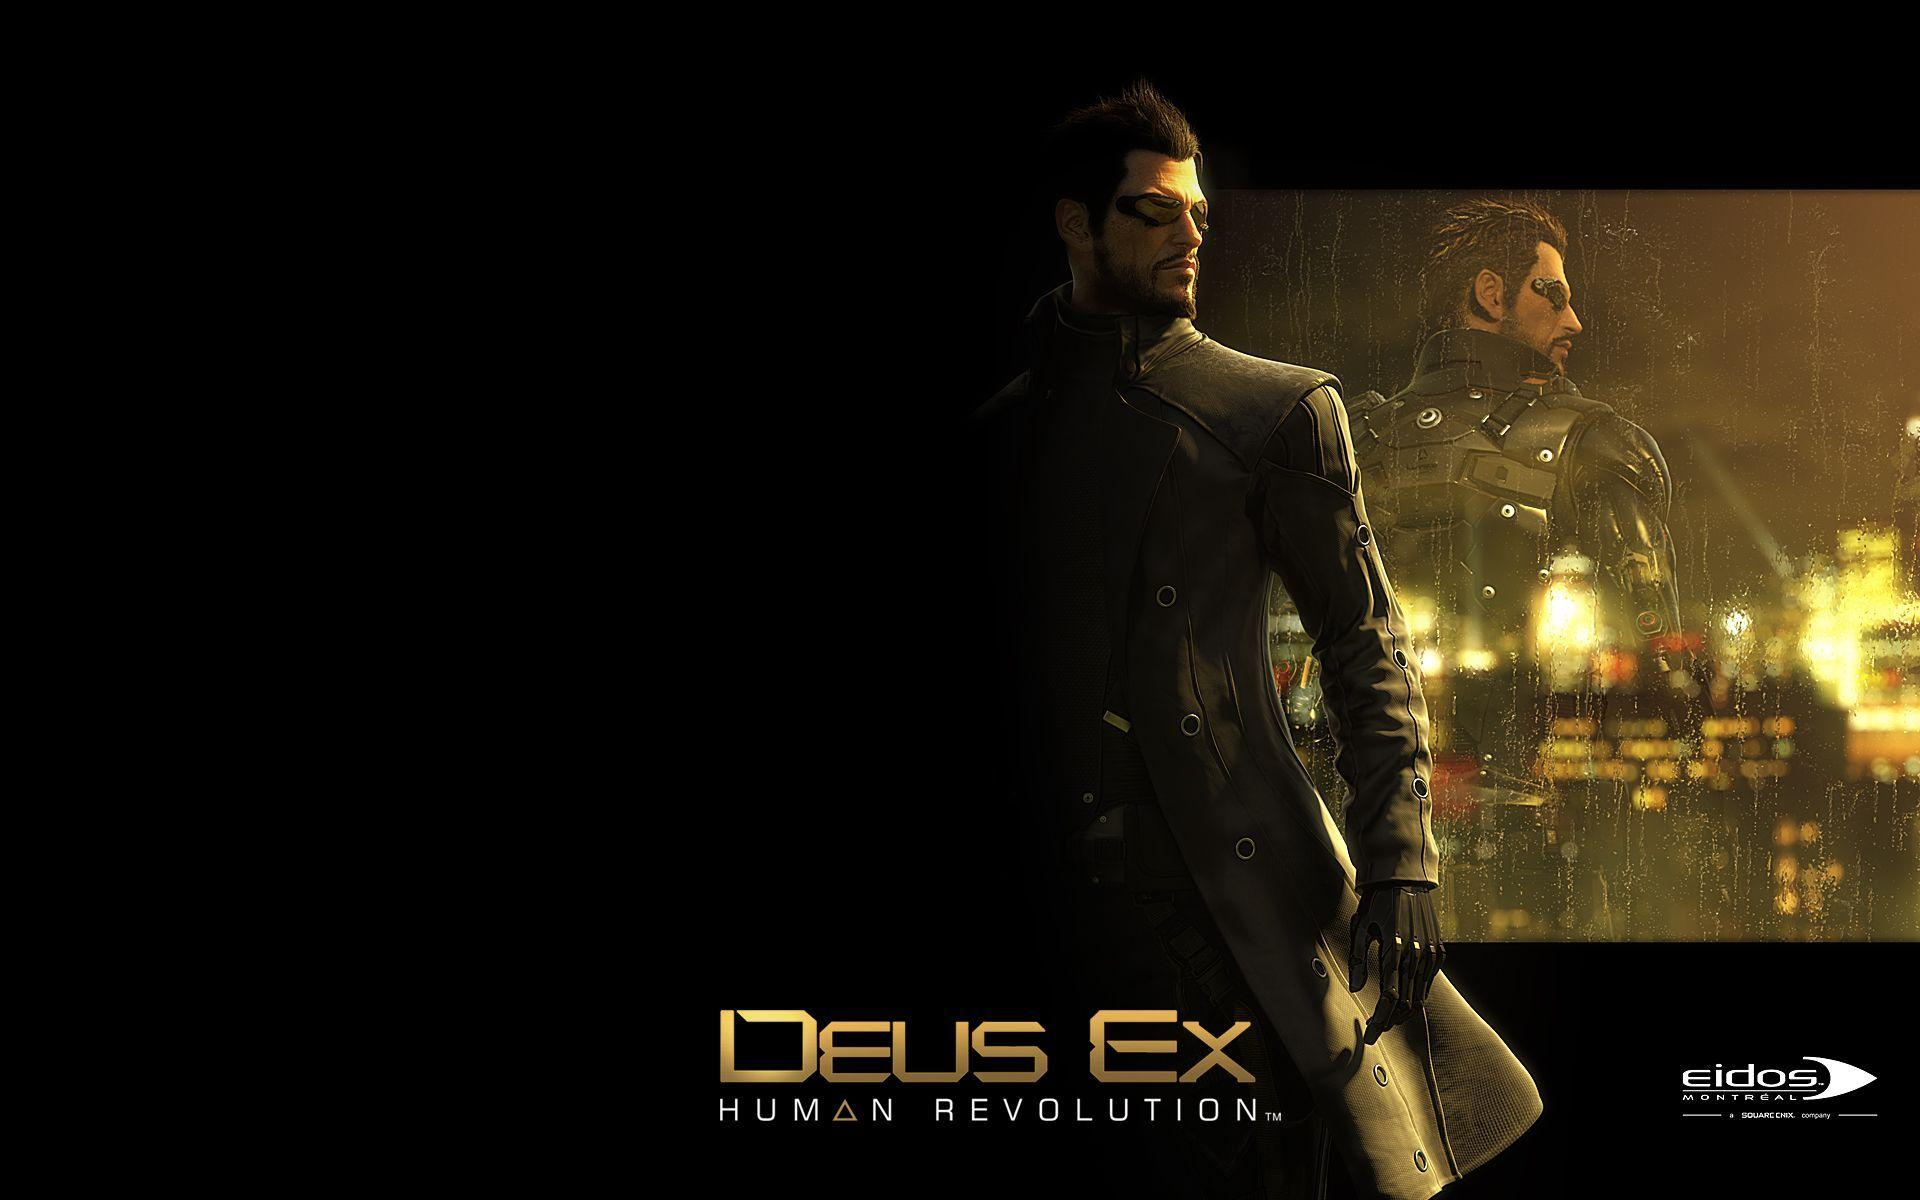 Deus Ex Human Revolution Wallpapers